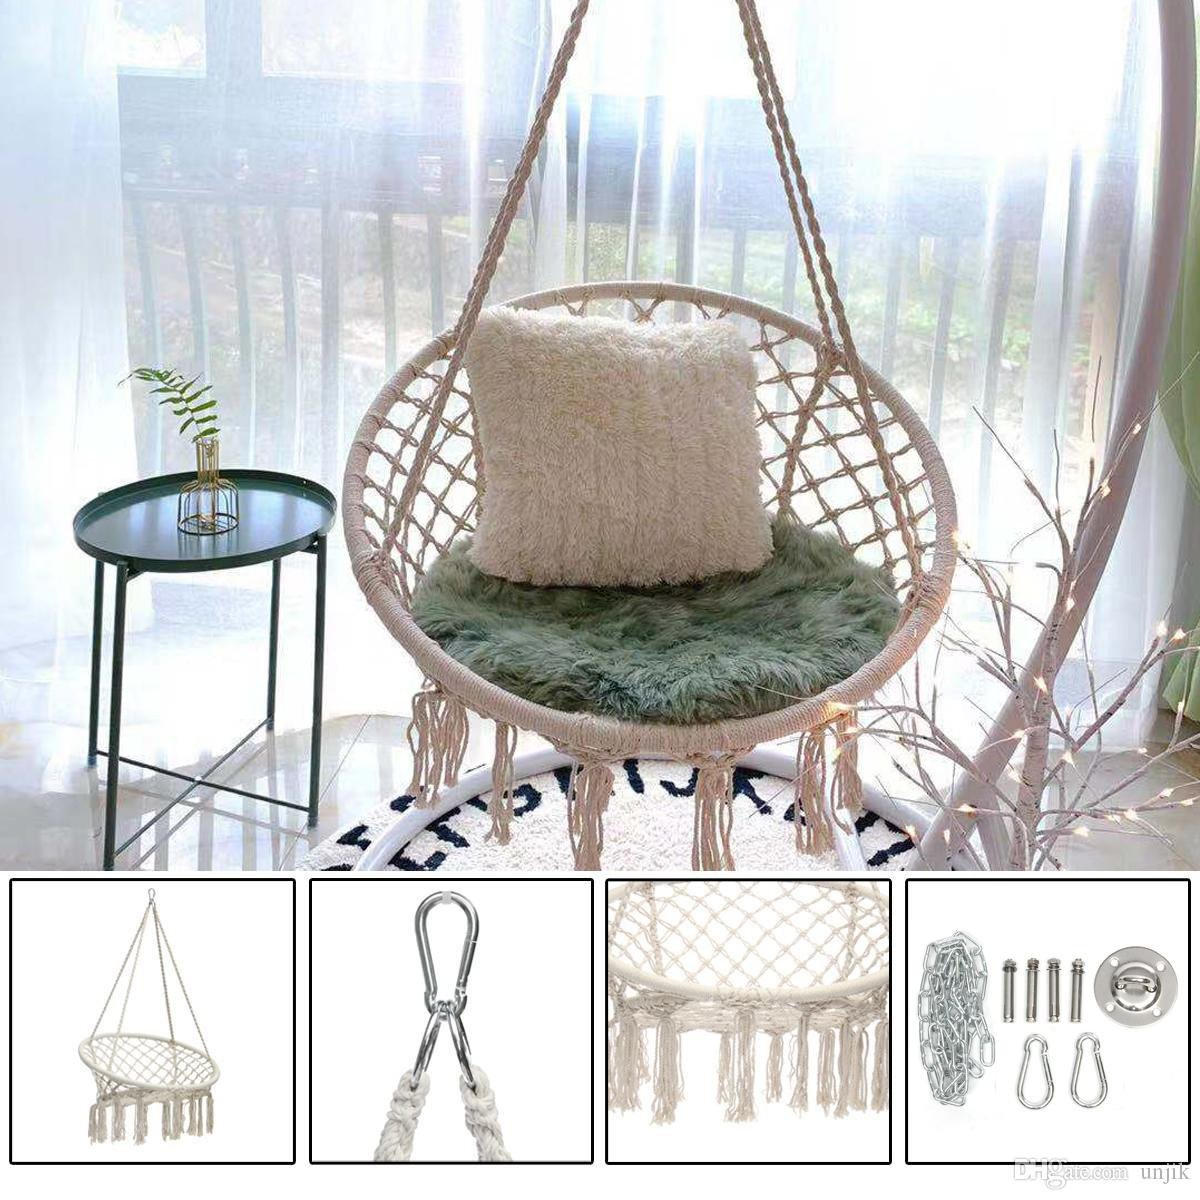 Hanging Chairs for Bedroom Elegant 2019 Round Hammock Swing Hanging Chair Outdoor Indoor Dormitory Bedroom Hanging Chair for Child Adult Safety Hammock with Accessories From Unjik